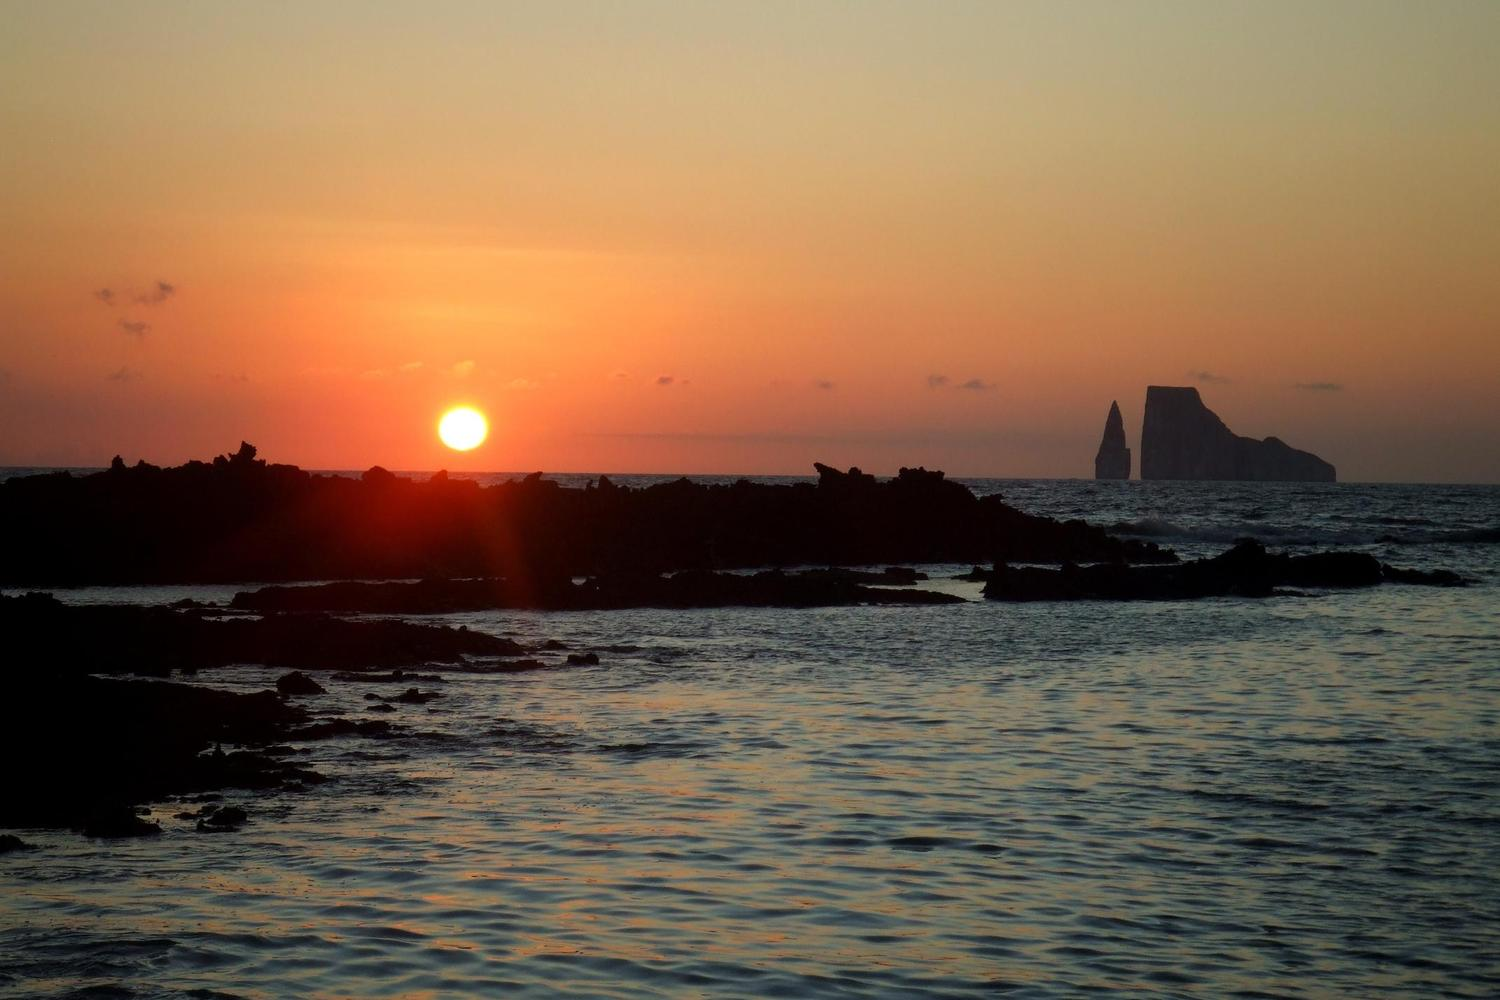 Sunset over Kicker Rock in the Galapagos Islands